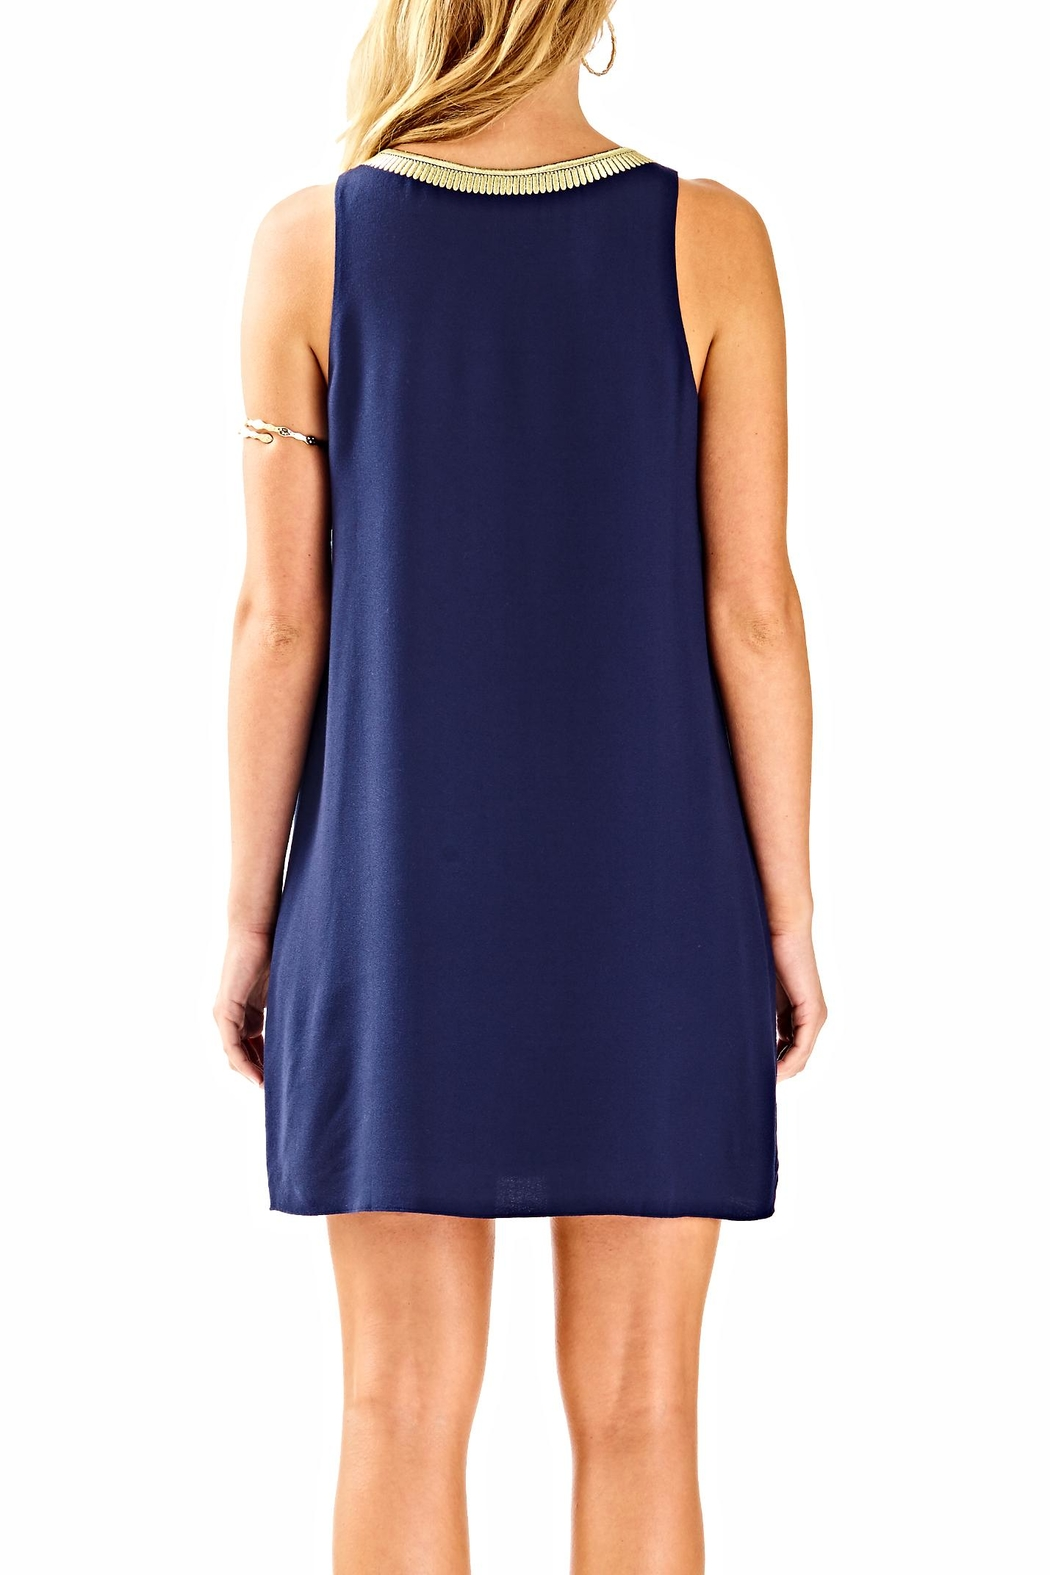 Lilly Pulitzer Aubra Shift Dress - Front Full Image